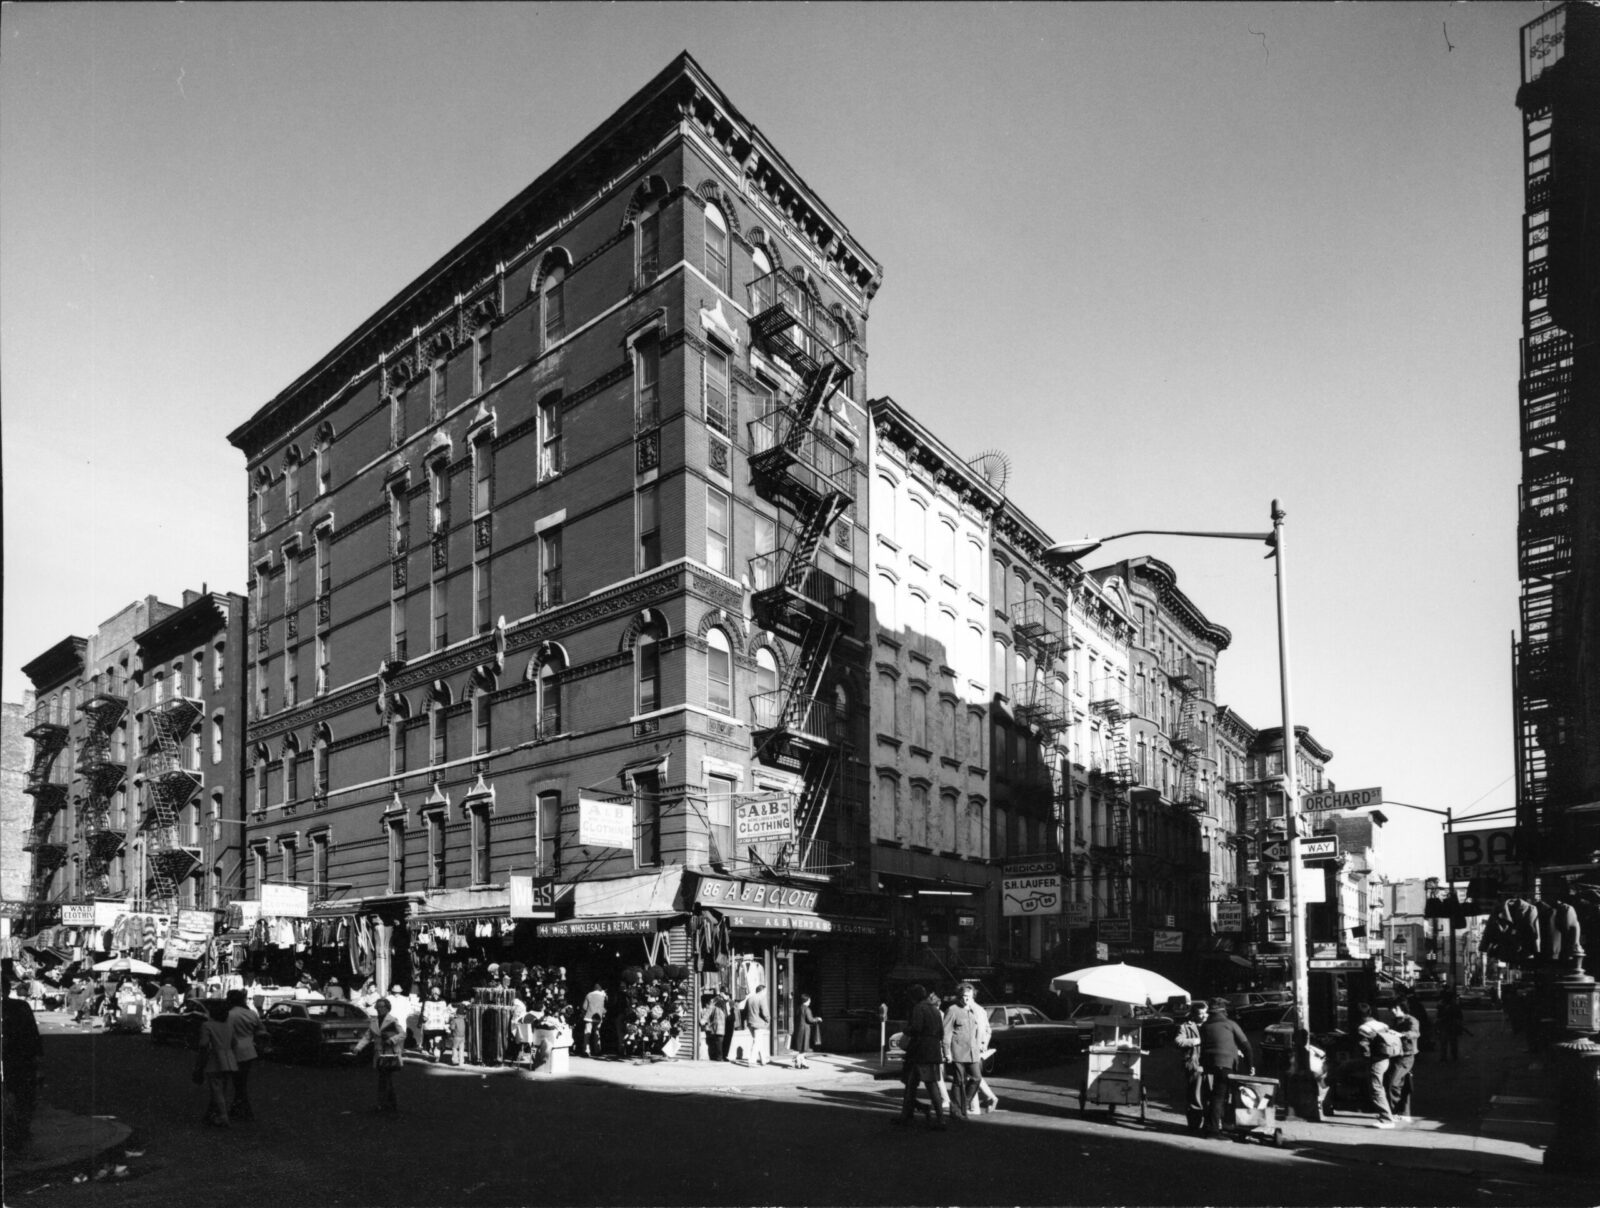 Black and white photo of a street corner in New York City. An apartment building sits at the corner with store fronts on the ground level, people walking by.